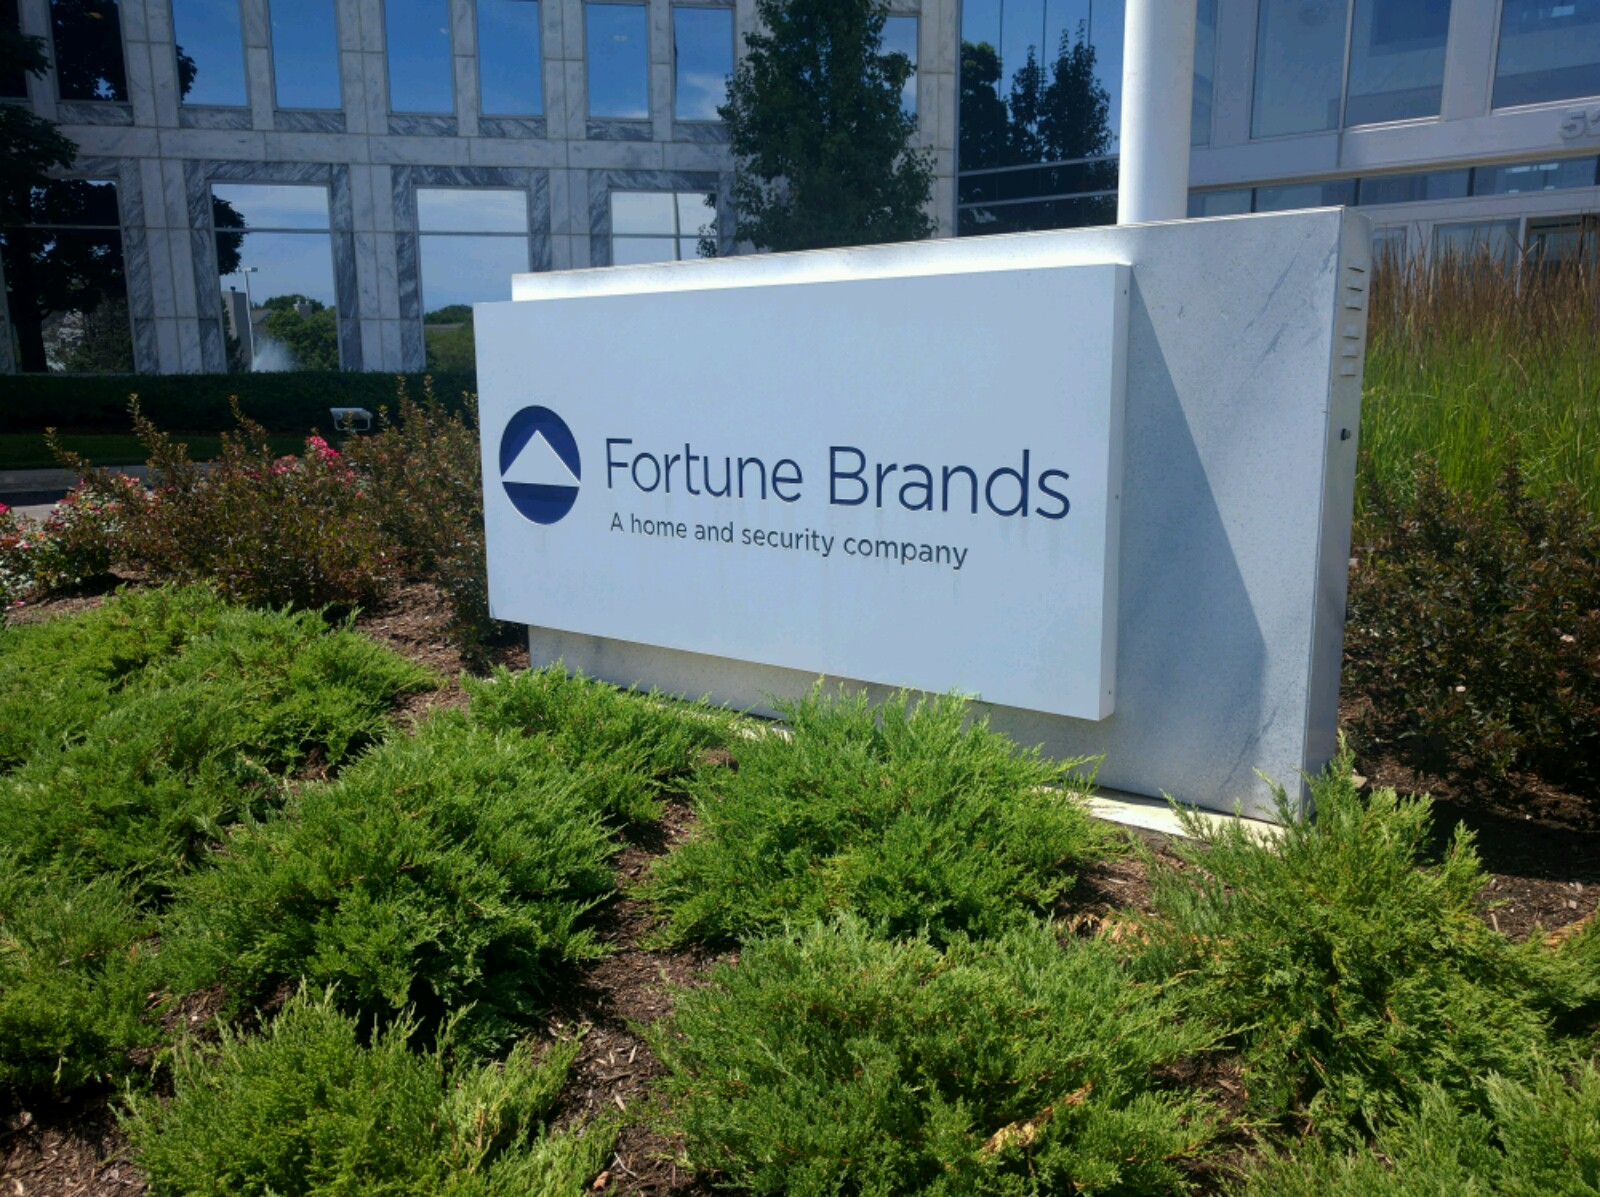 Fortune Brands' corporate headquarters in Deerfield, Illinois.